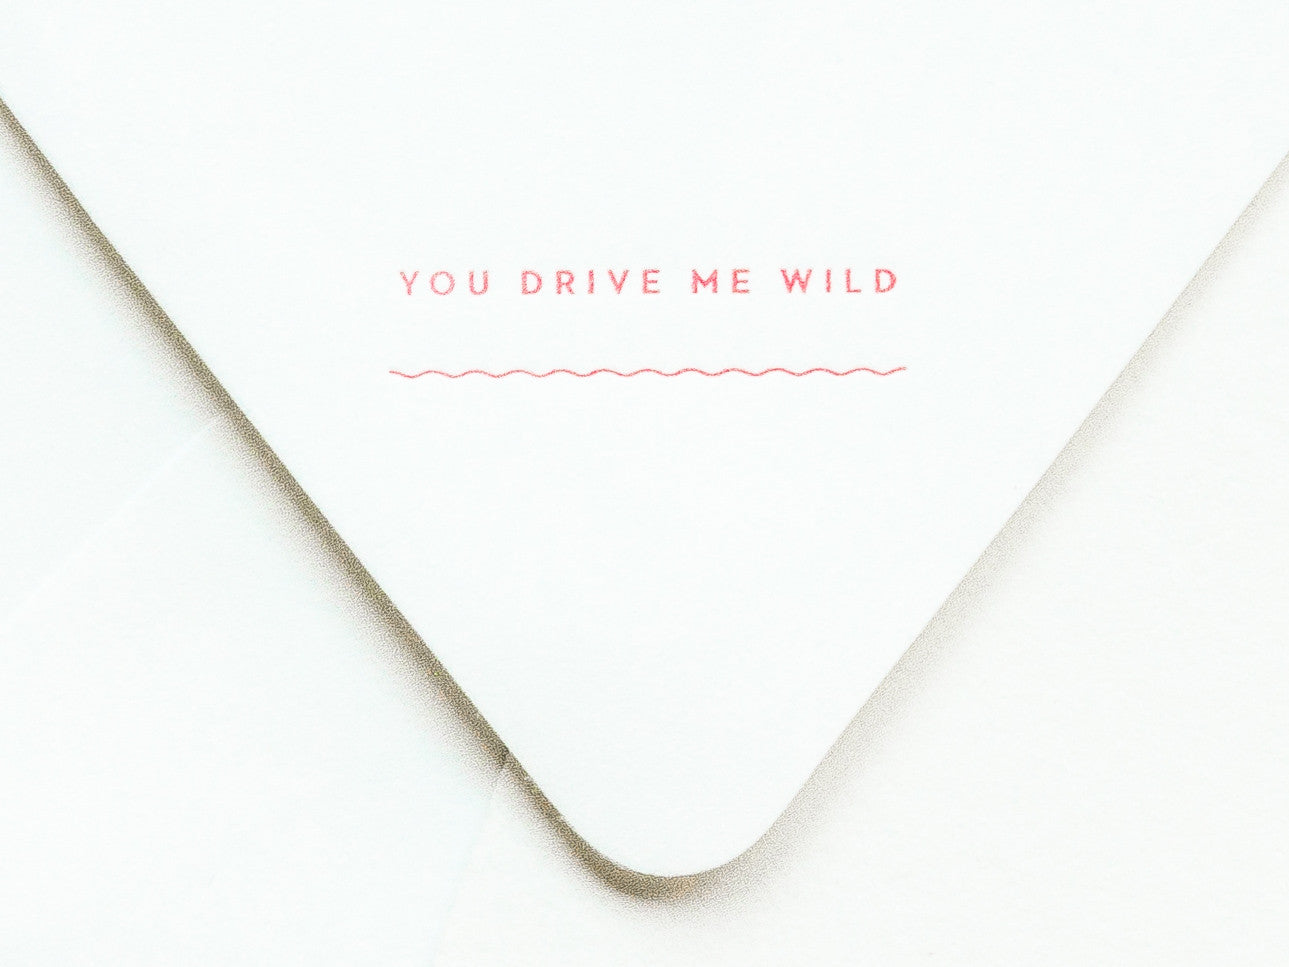 You Drive Me Wild Notevelope & Sporty Car Notecard